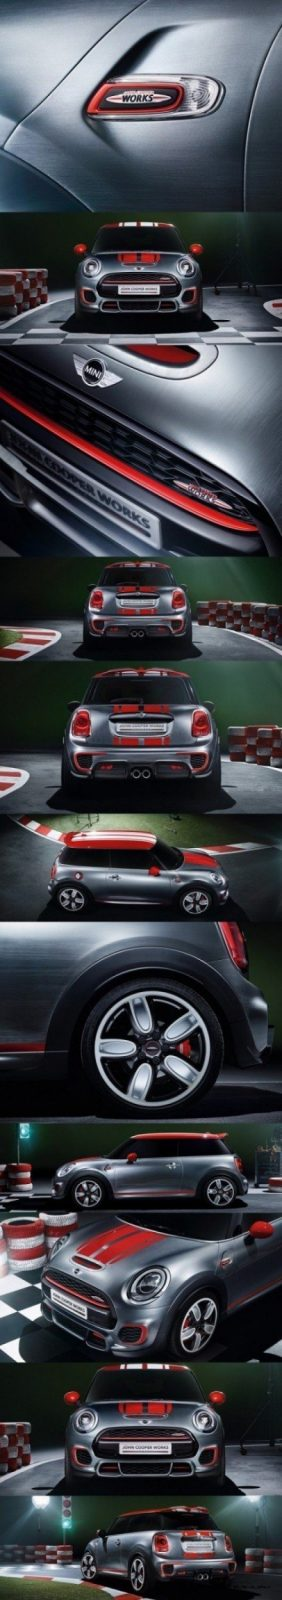 2015-MINI-Cooper-JCW-Concept-Brushed-Alloy-Paints-Hot-Bod-15-vert